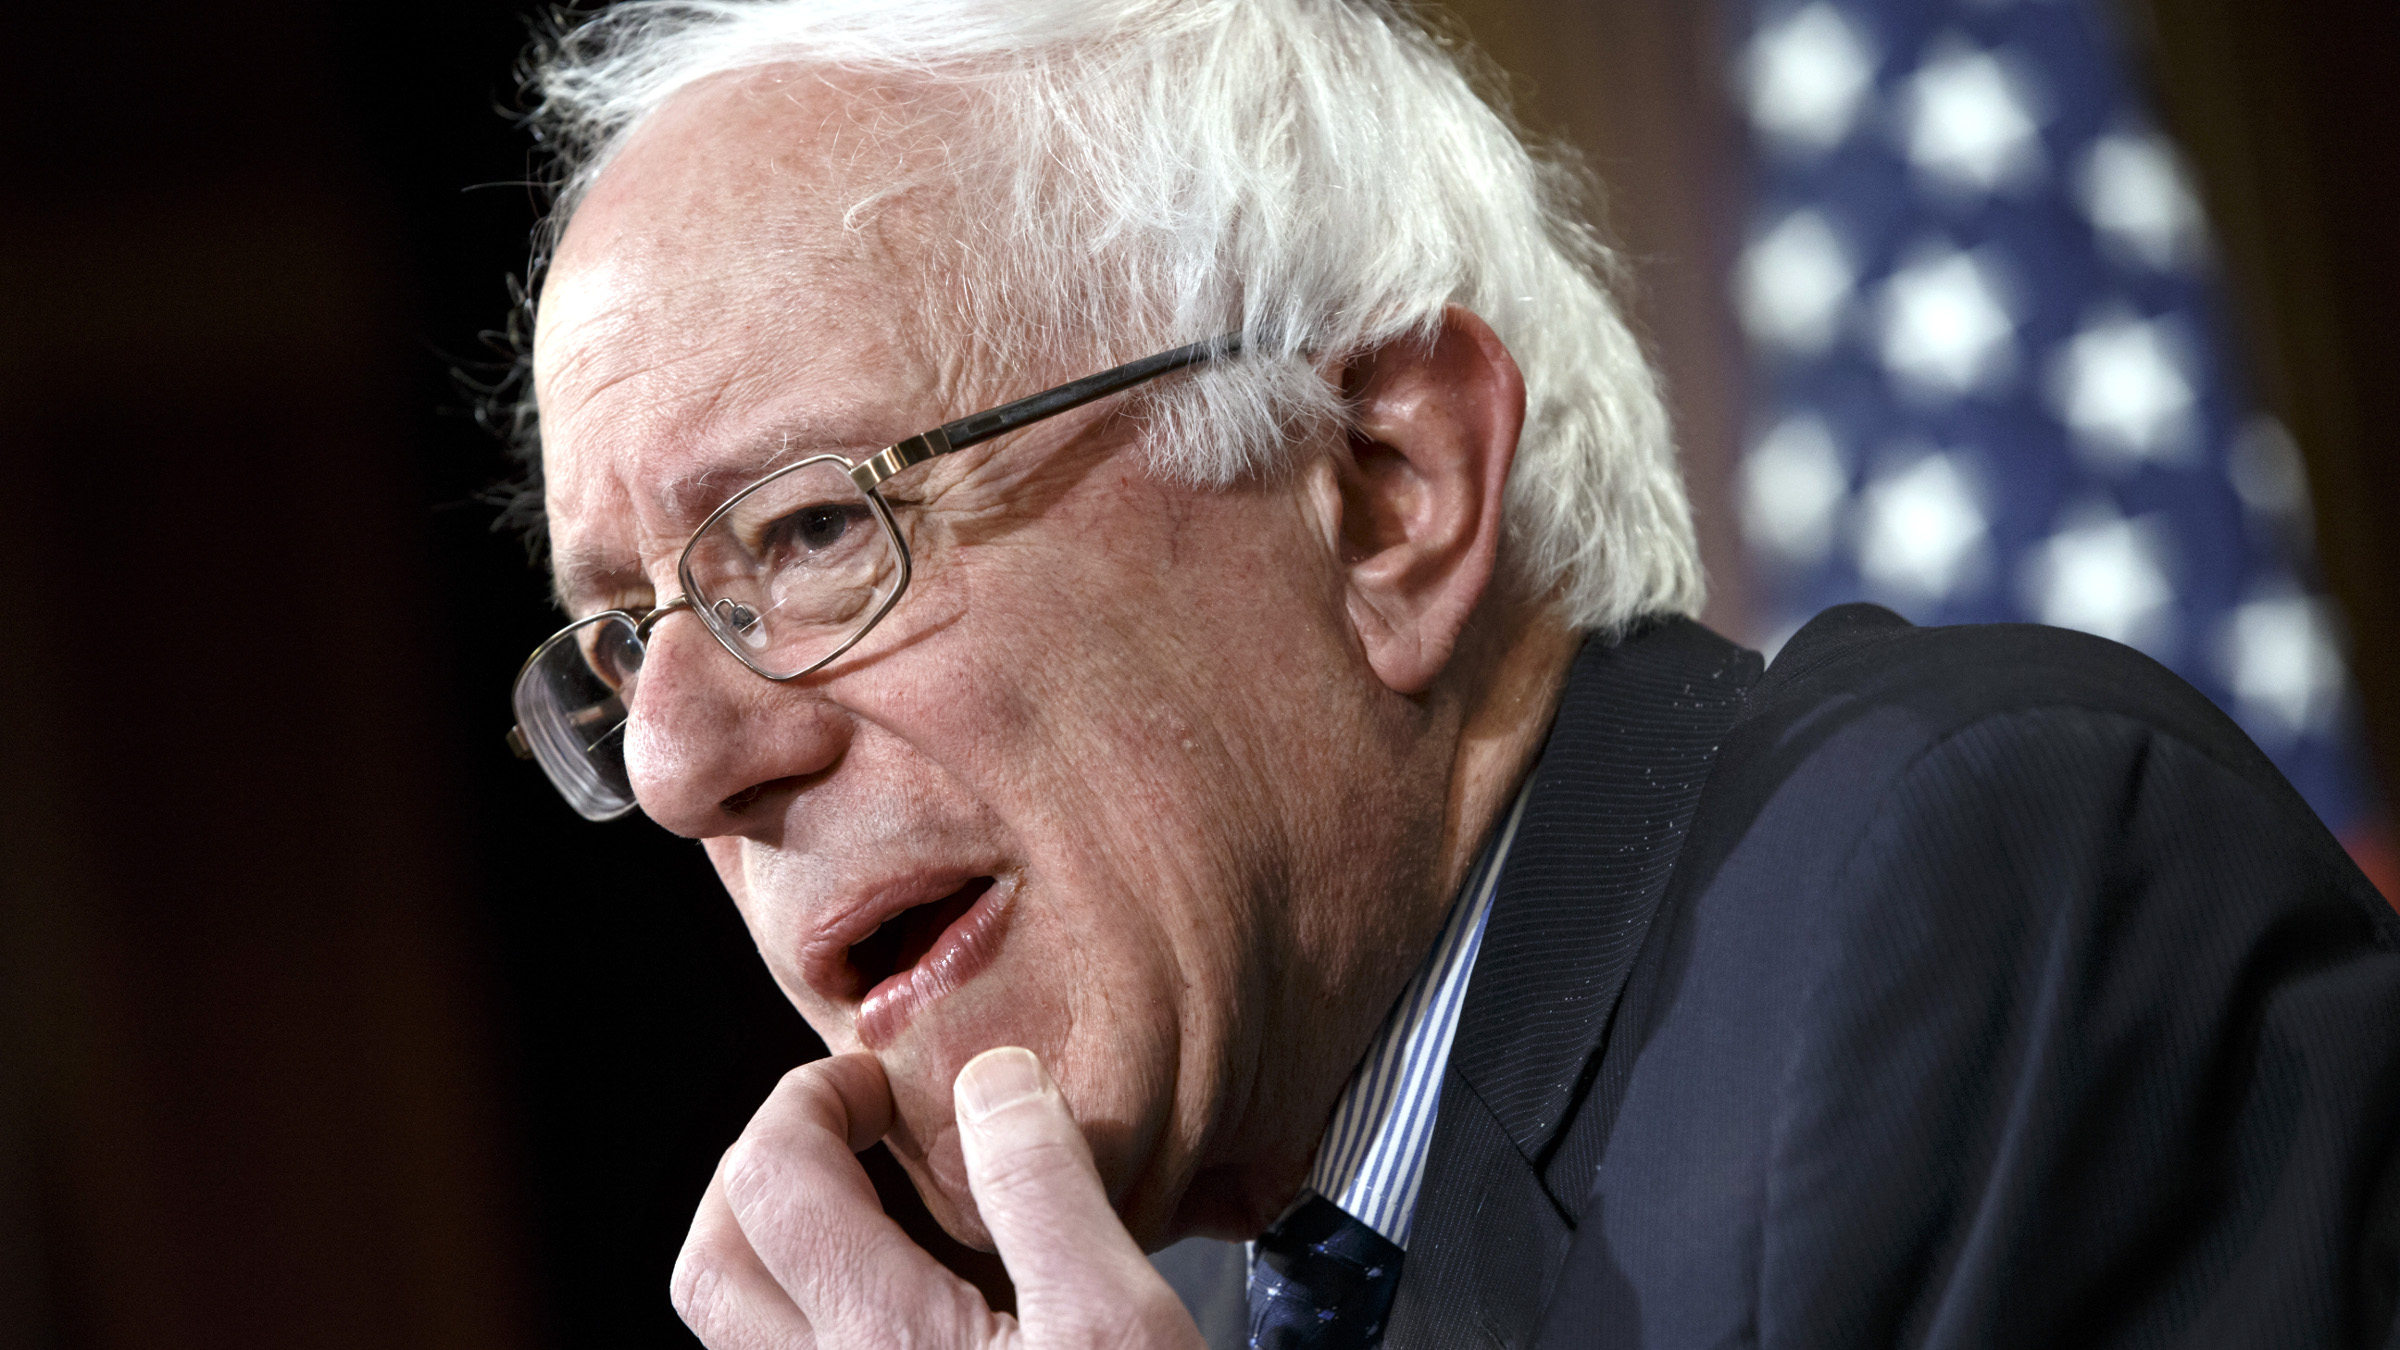 Sen. Bernie Sanders, I-Vt. gestures during a news conference on Capitol Hill in Washington, Friday, Jan. 16, 2015, to discuss Republican efforts to cut Social Security and Medicare and other programs that have an impact on working families. Sanders, an independent who caucuses with Democrats, became the ranking minority member on the Senate Budget Committee when the new GOP-controlled Congress began.